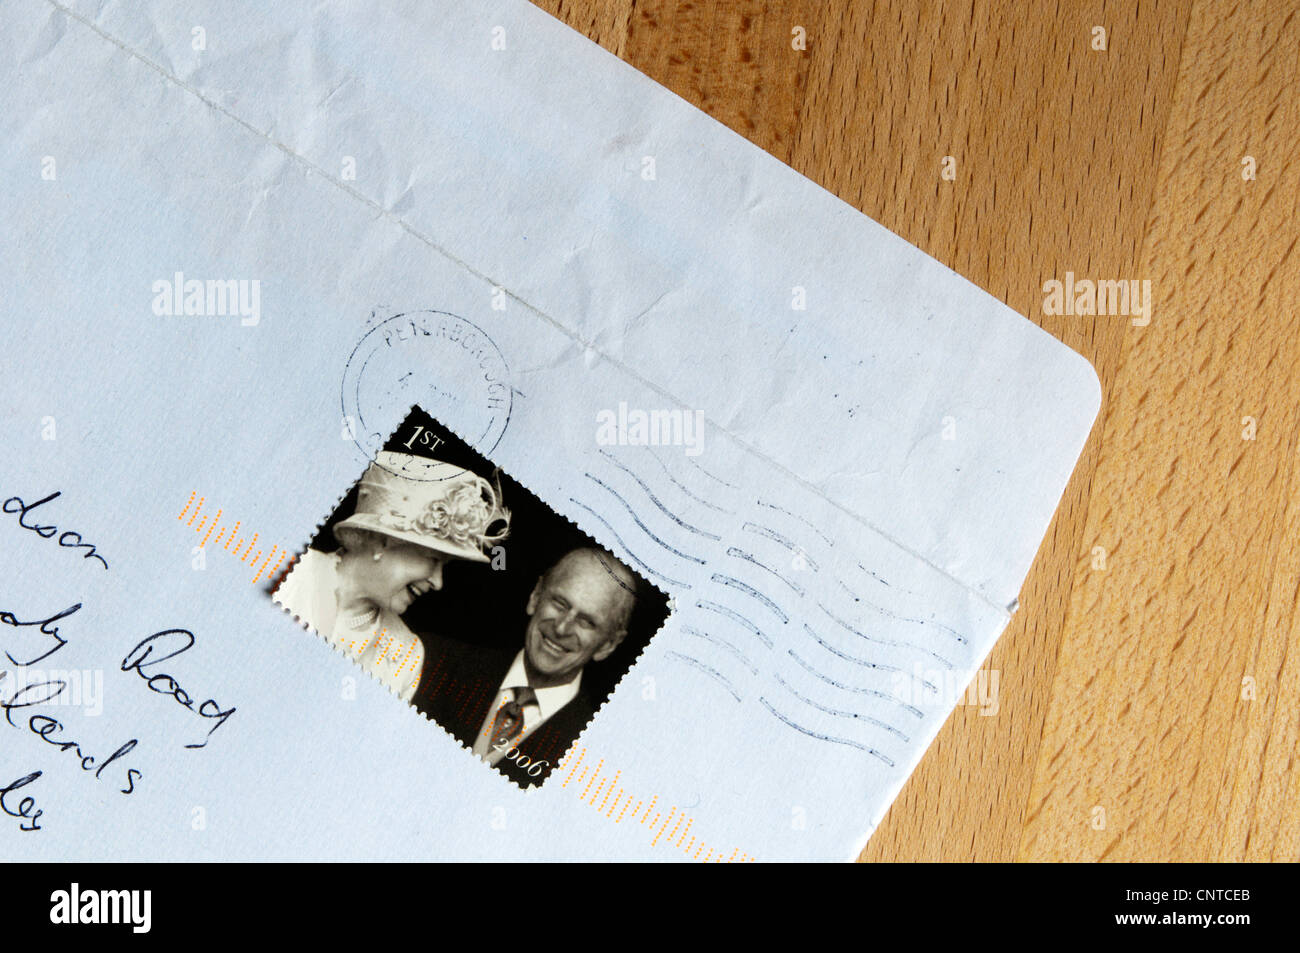 Stamp commemorating the Queen and Prince Philip's 60th (Diamond) Wedding Anniversary on 20th November 2007. - Stock Image